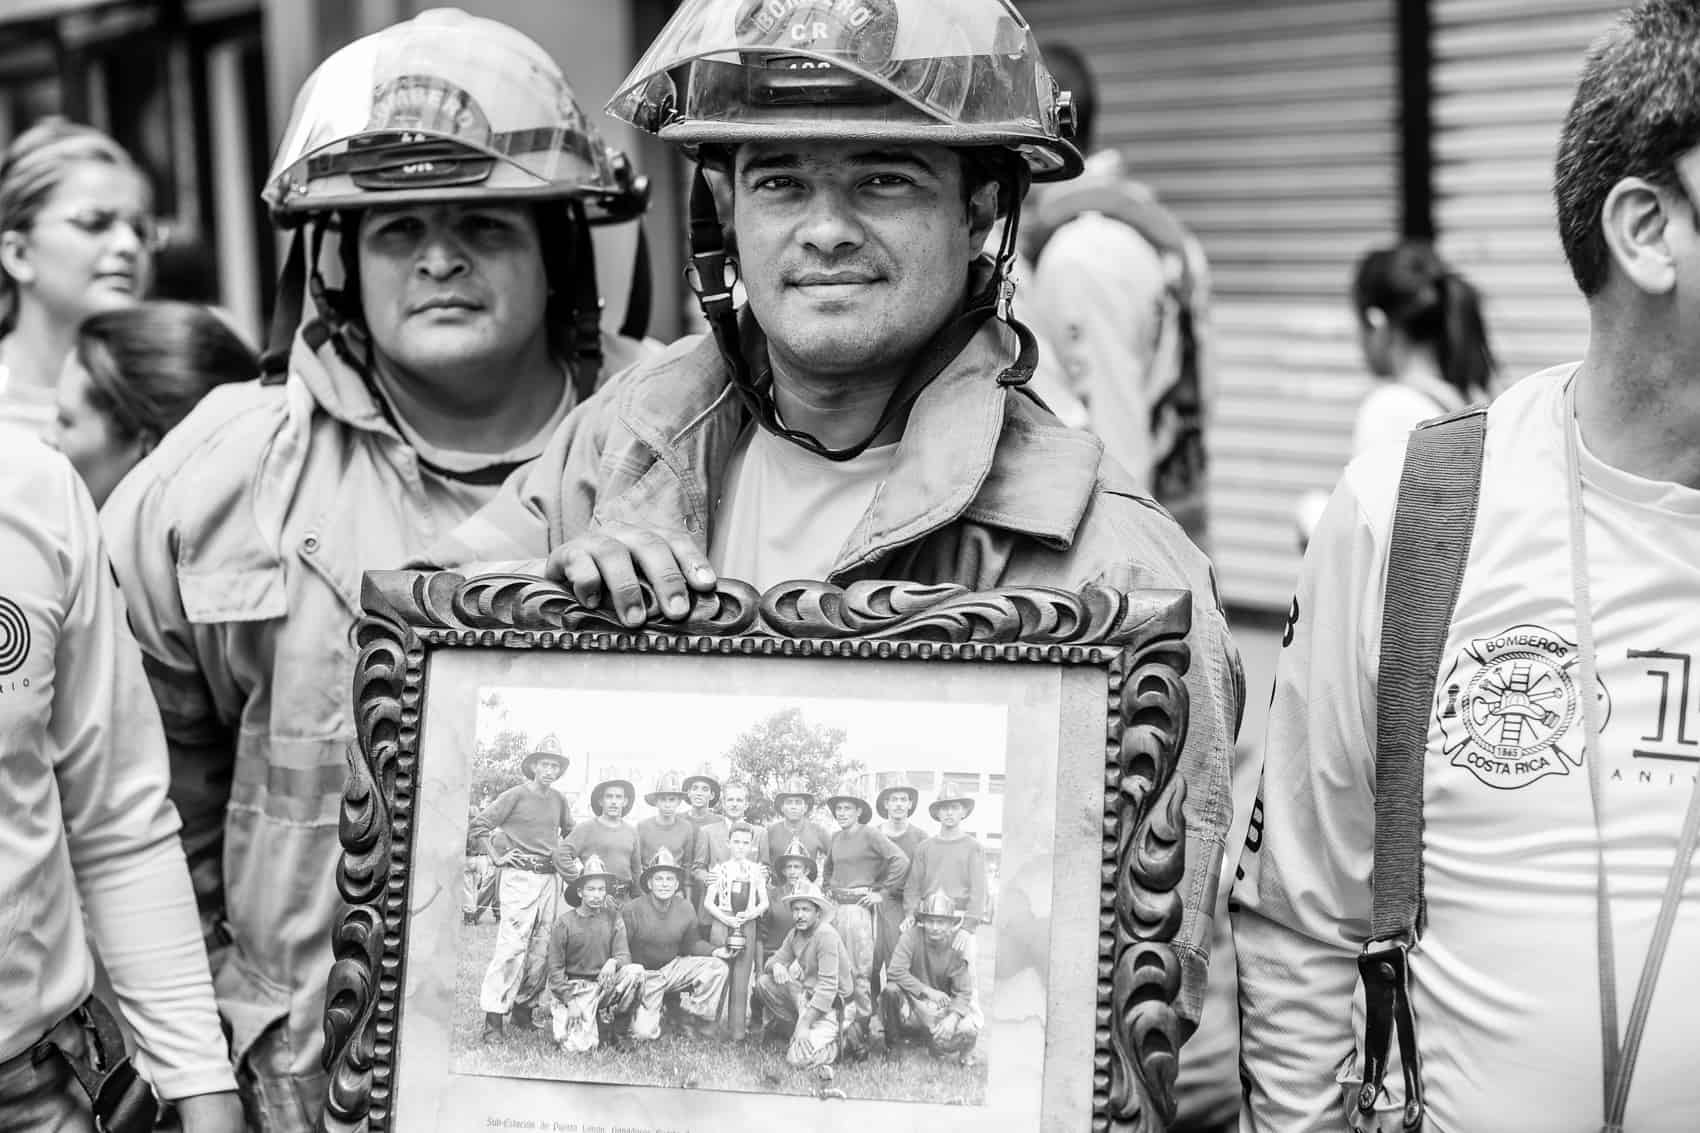 Firefighter Fran Guevara shows a picture of Costa Rican firefighters from 1952.